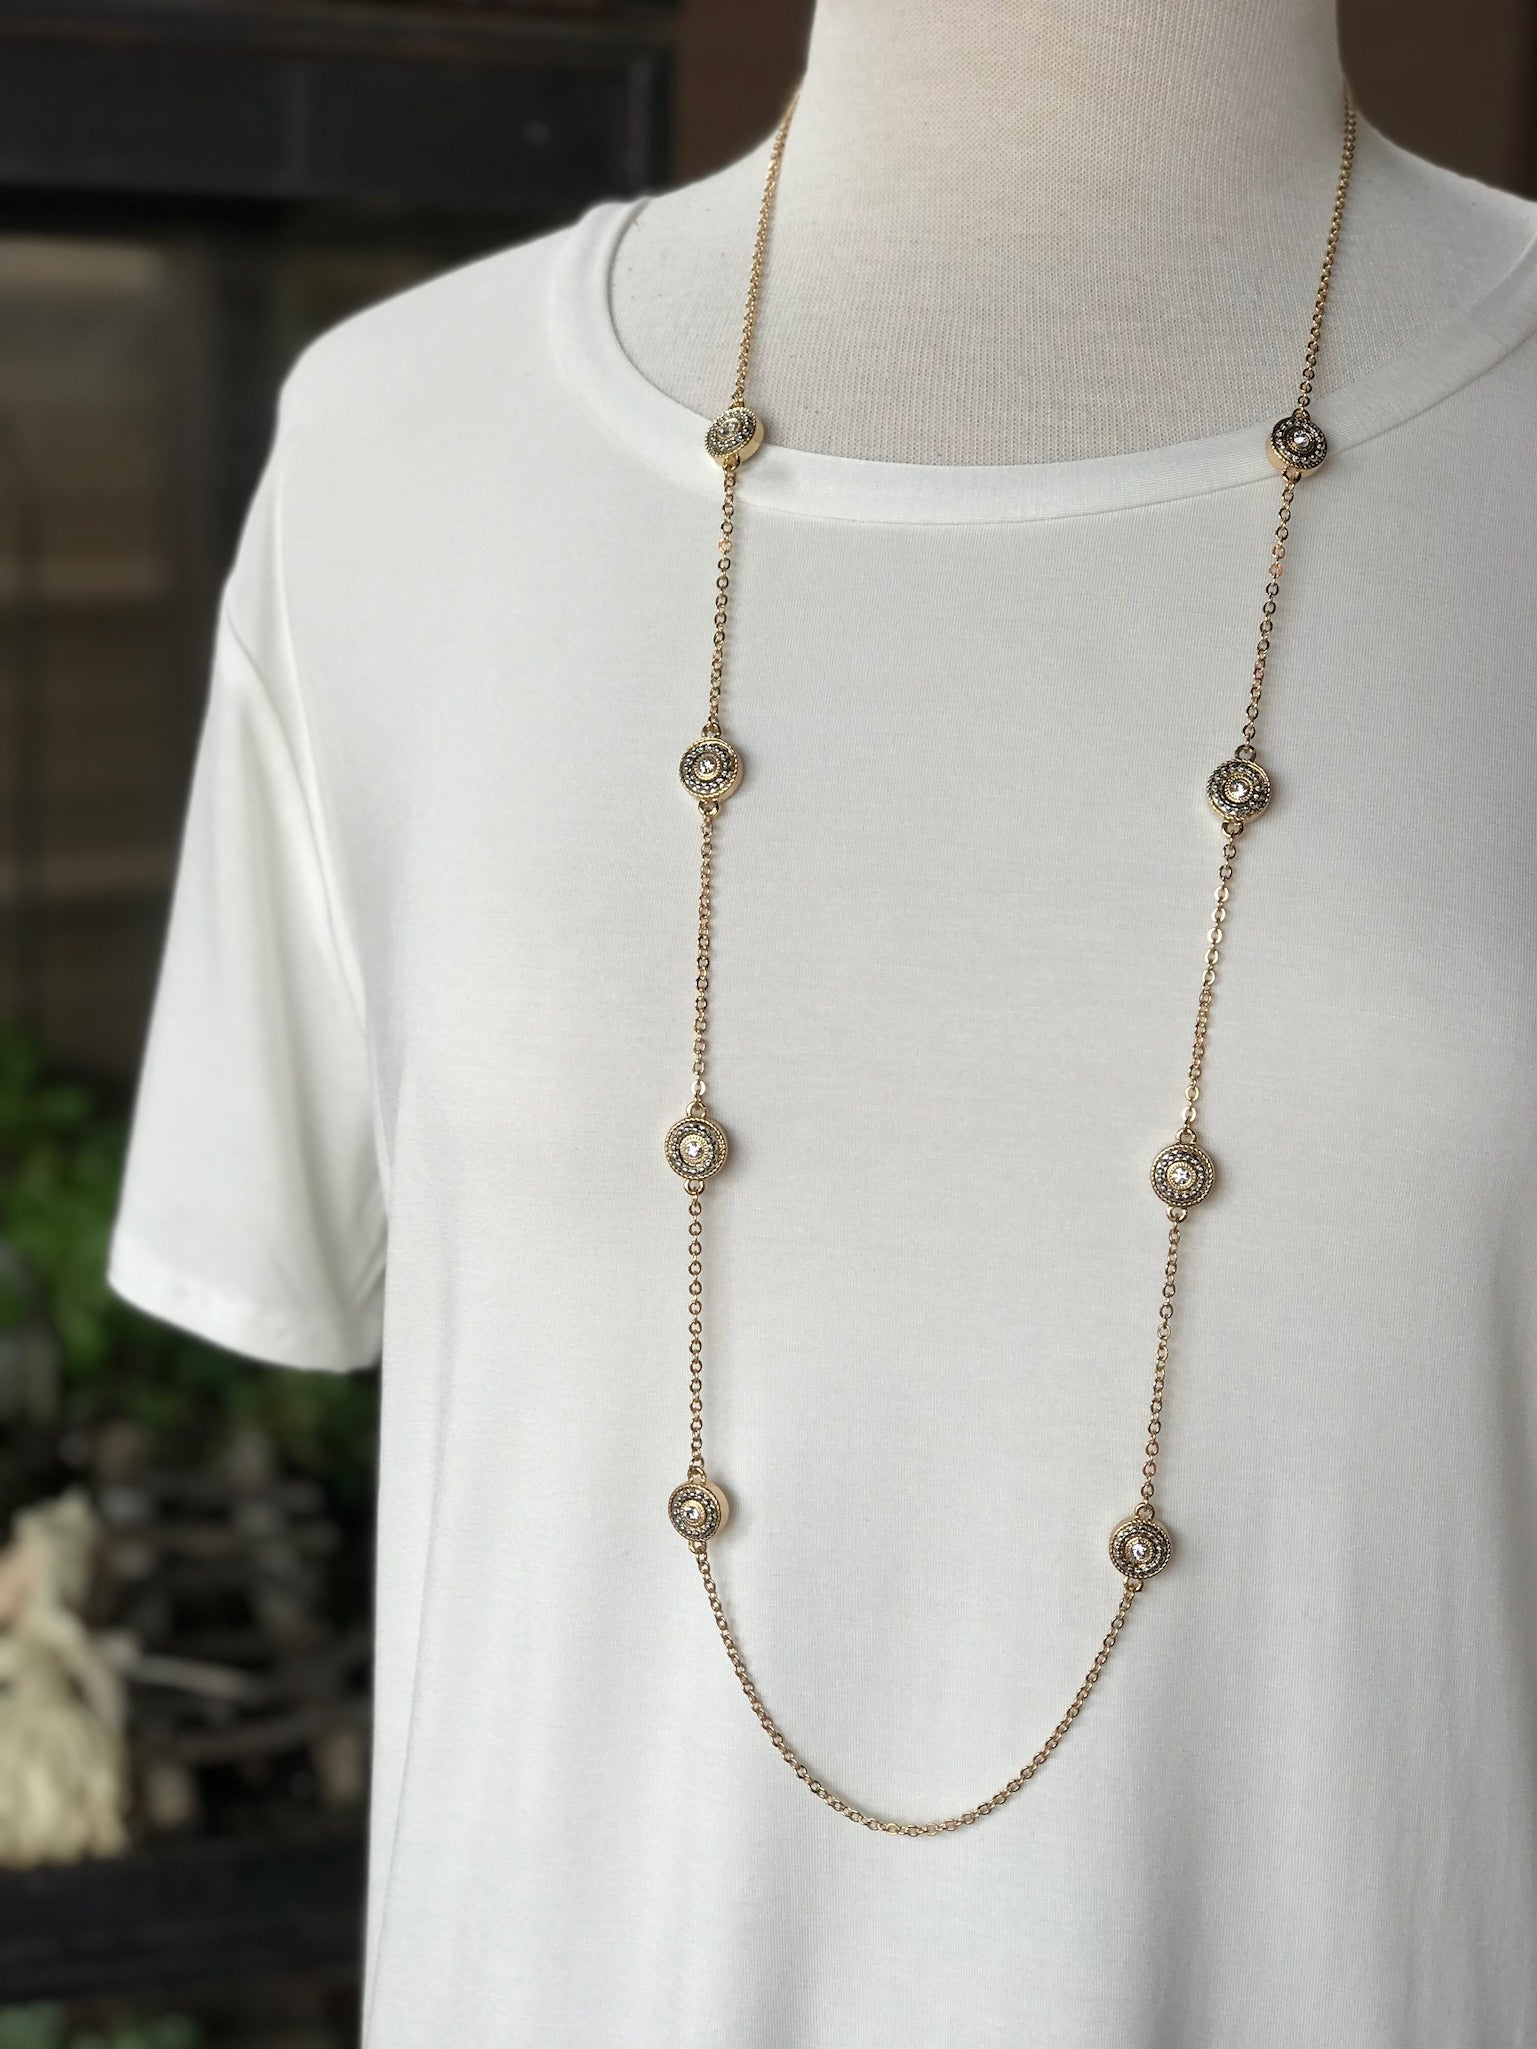 London Long Gold Necklace with Gold and Silver Circle Pendants